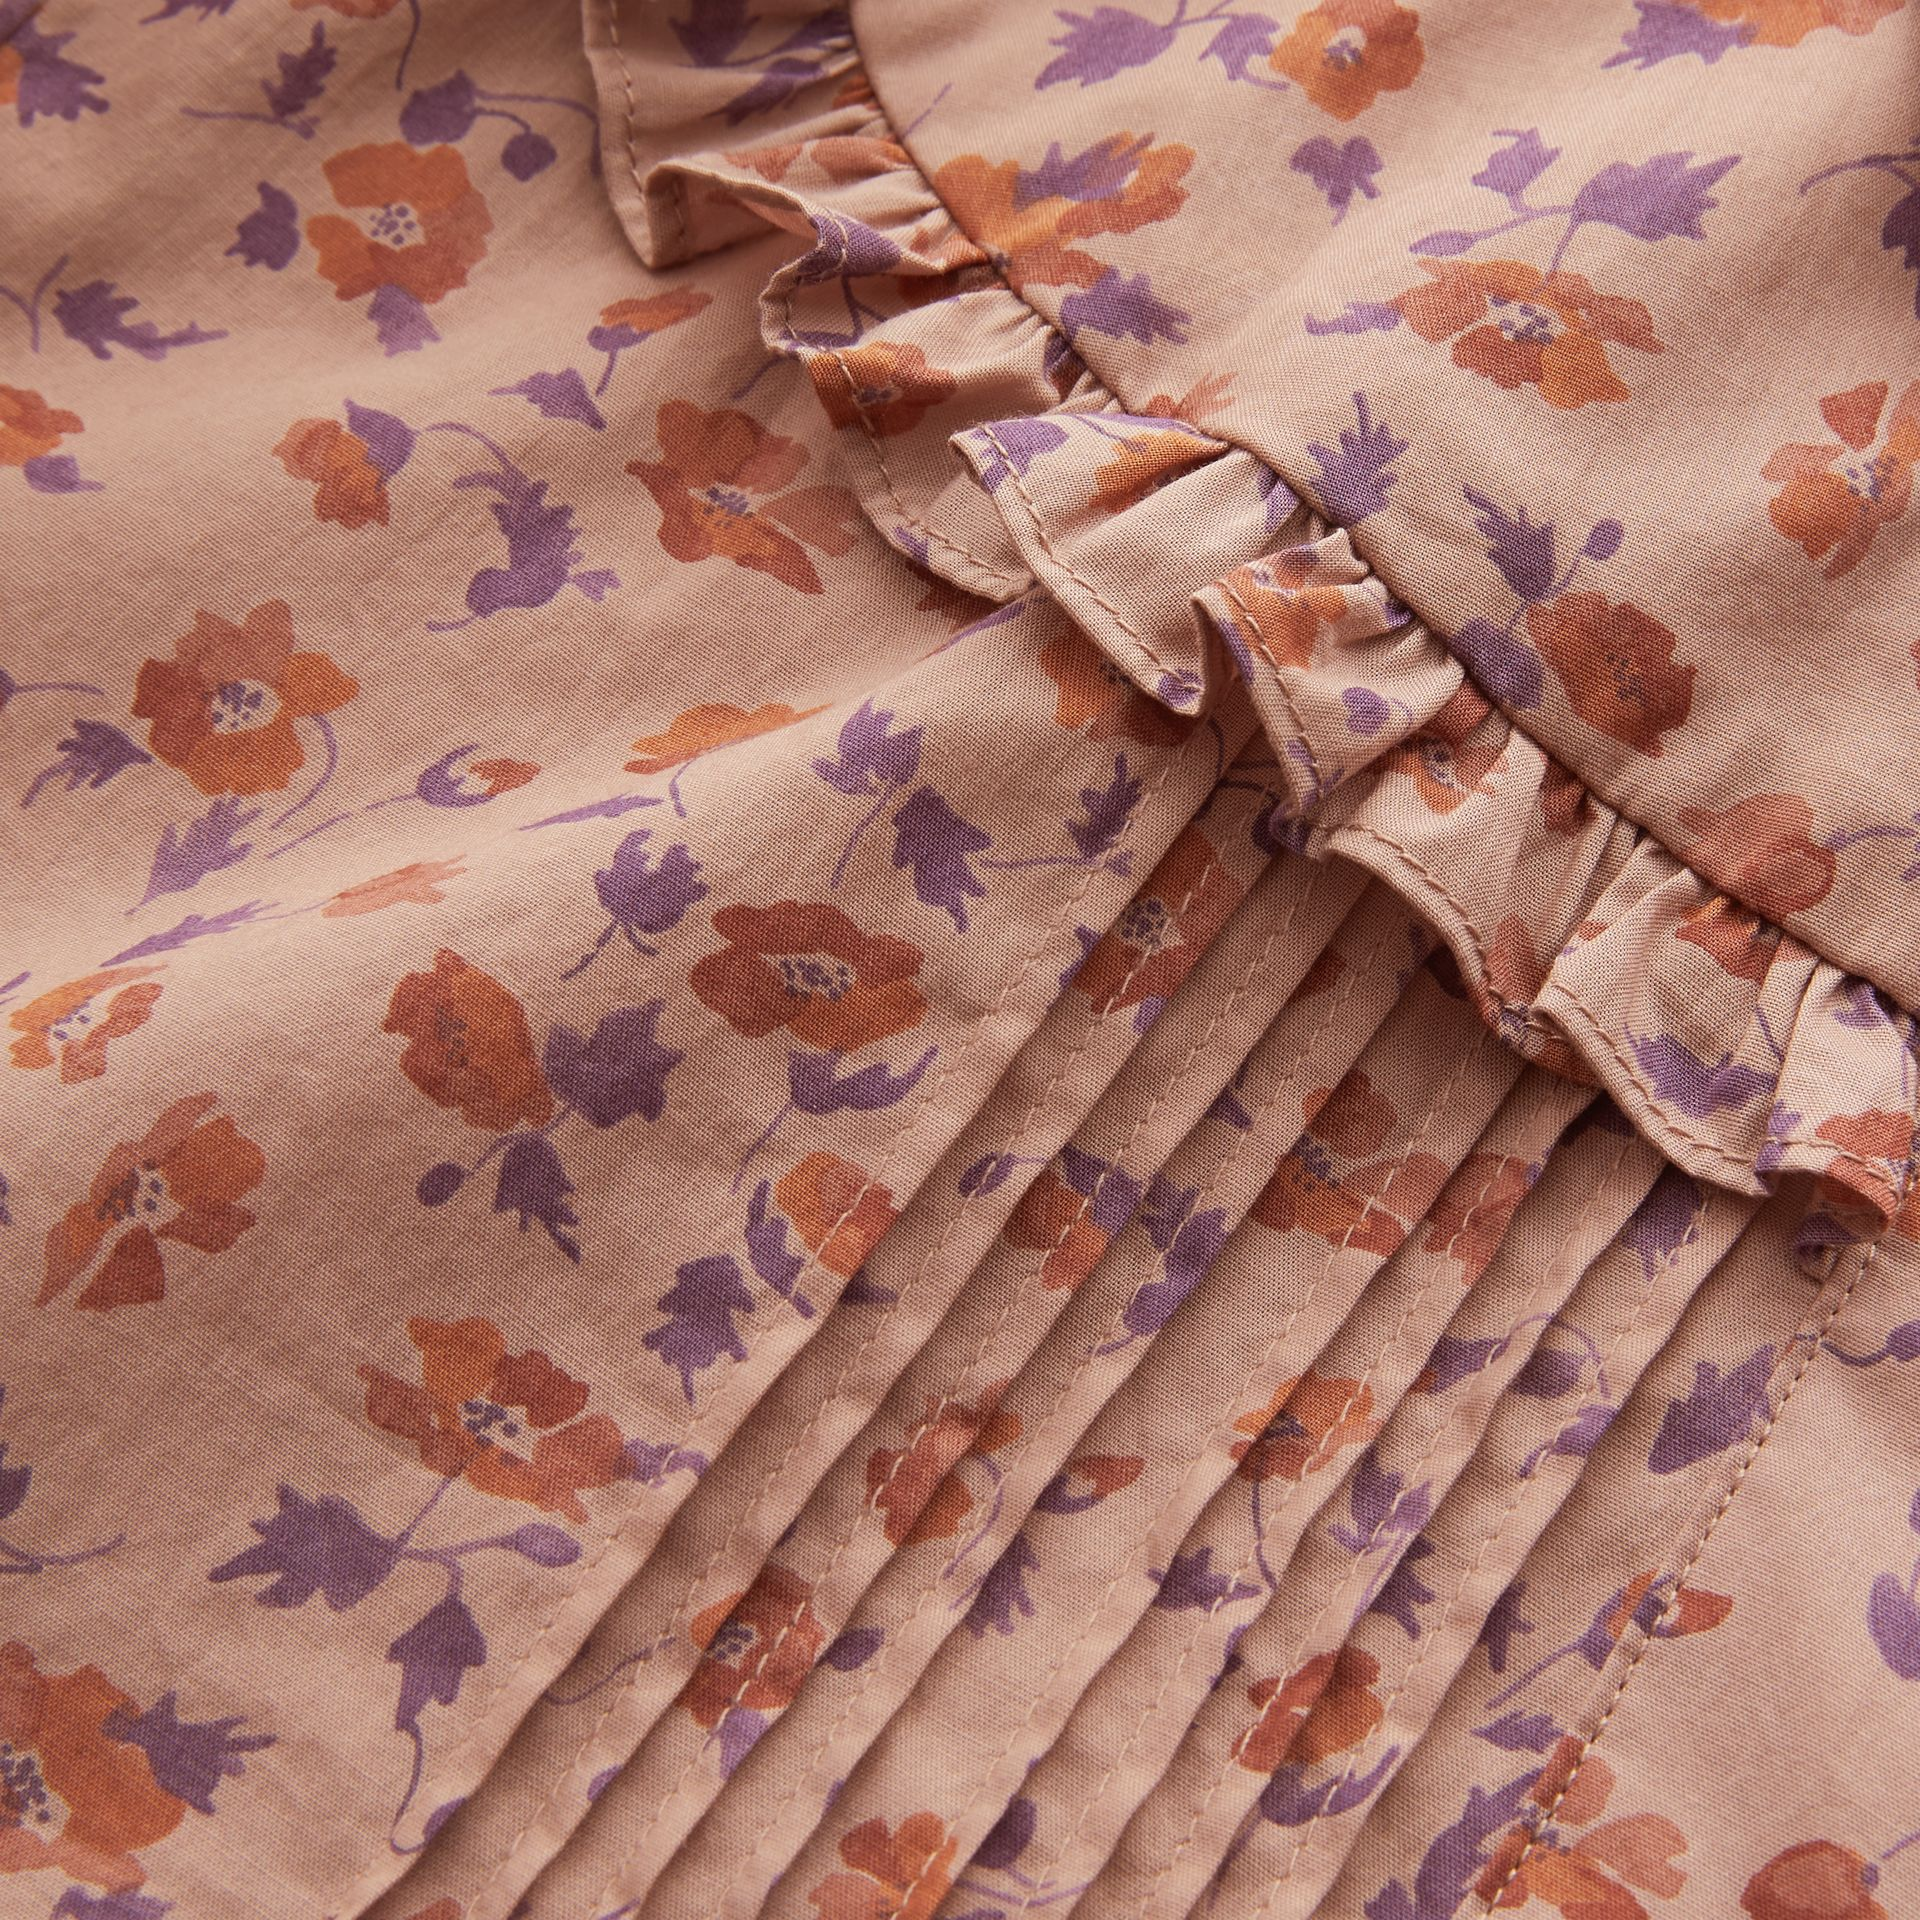 Ruffle Yoke Floral Print Cotton Shirt in Light Copper - Women | Burberry - gallery image 2